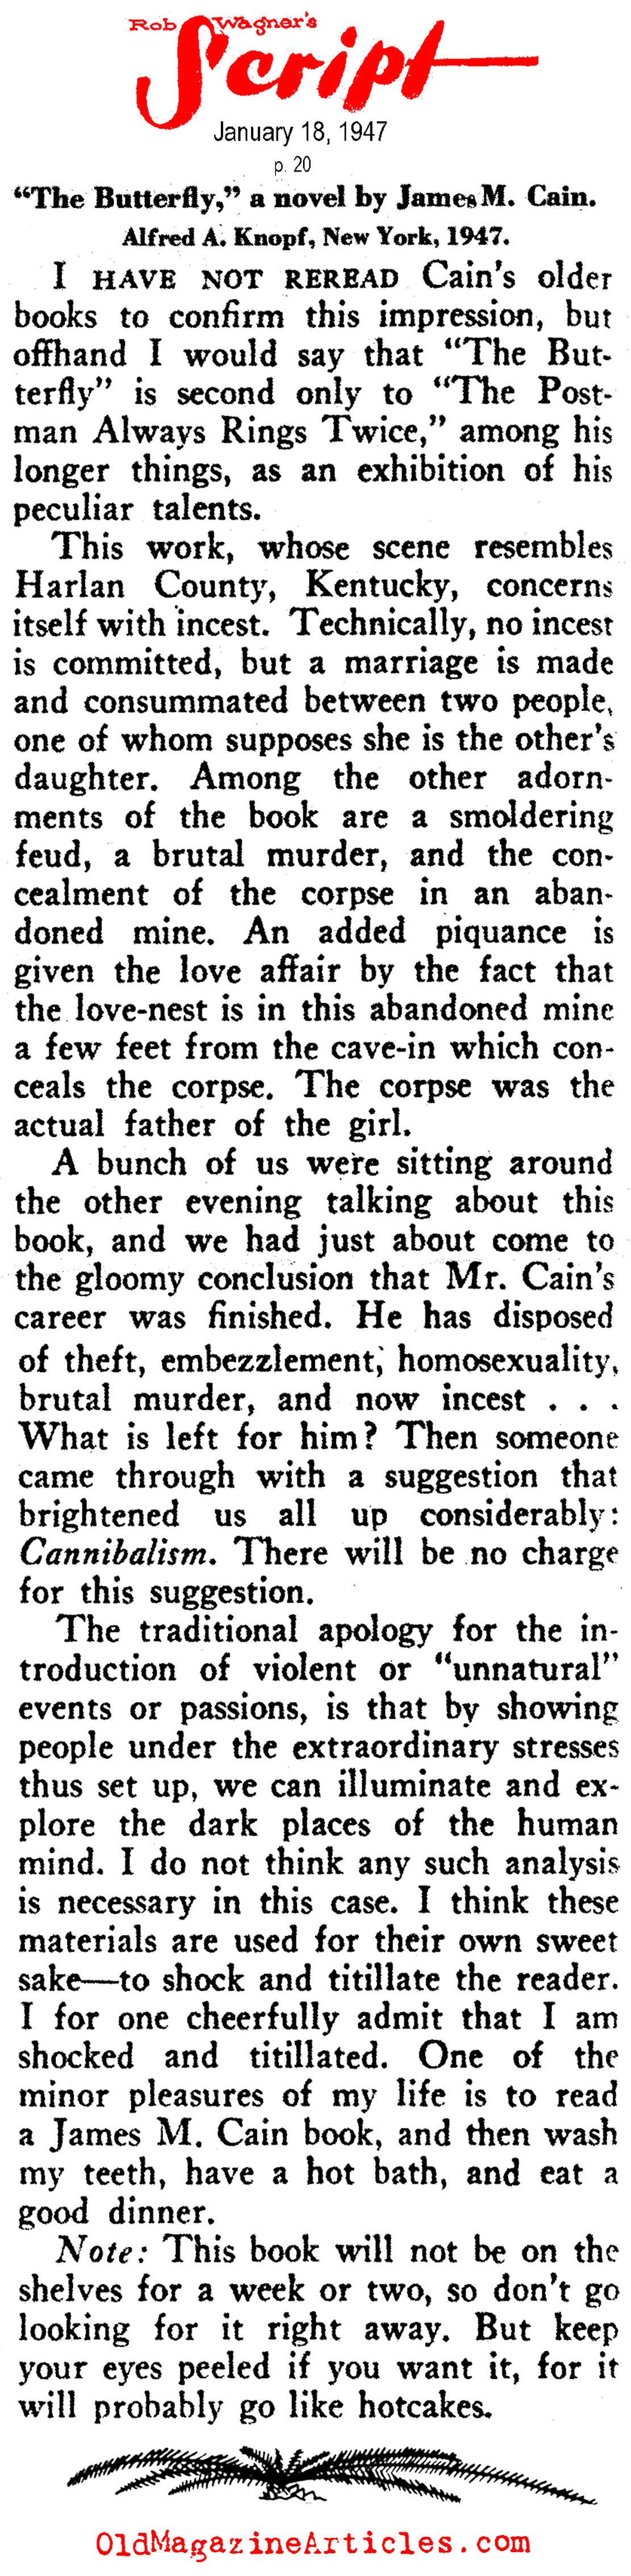 A 1947 Review of THE BUTTERFLY by James M. Cain (Rob Wagner's Script, 1947)